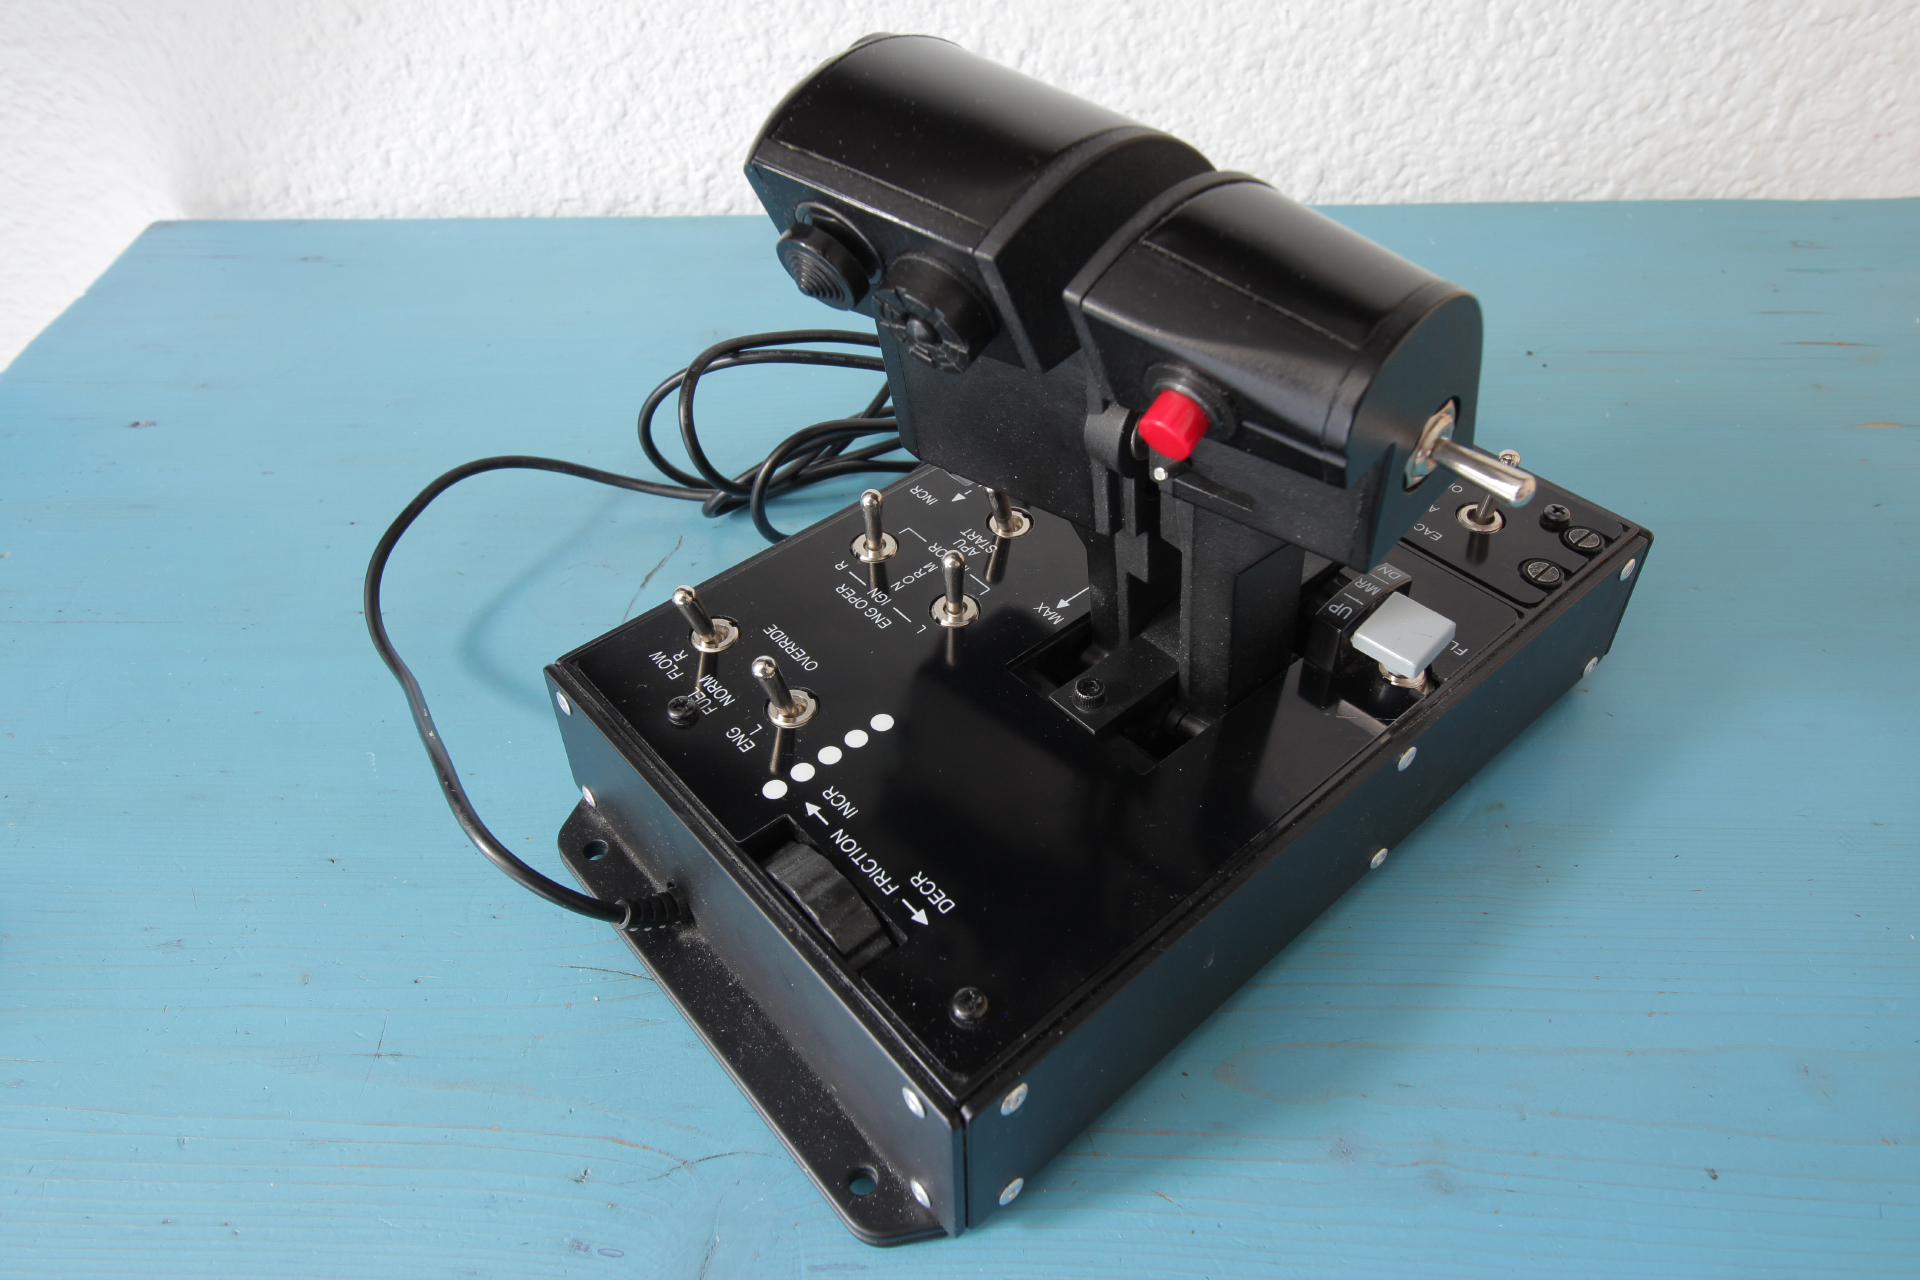 Complete Guide for Joysticks, Throttles and Rudder Pedals for Flight